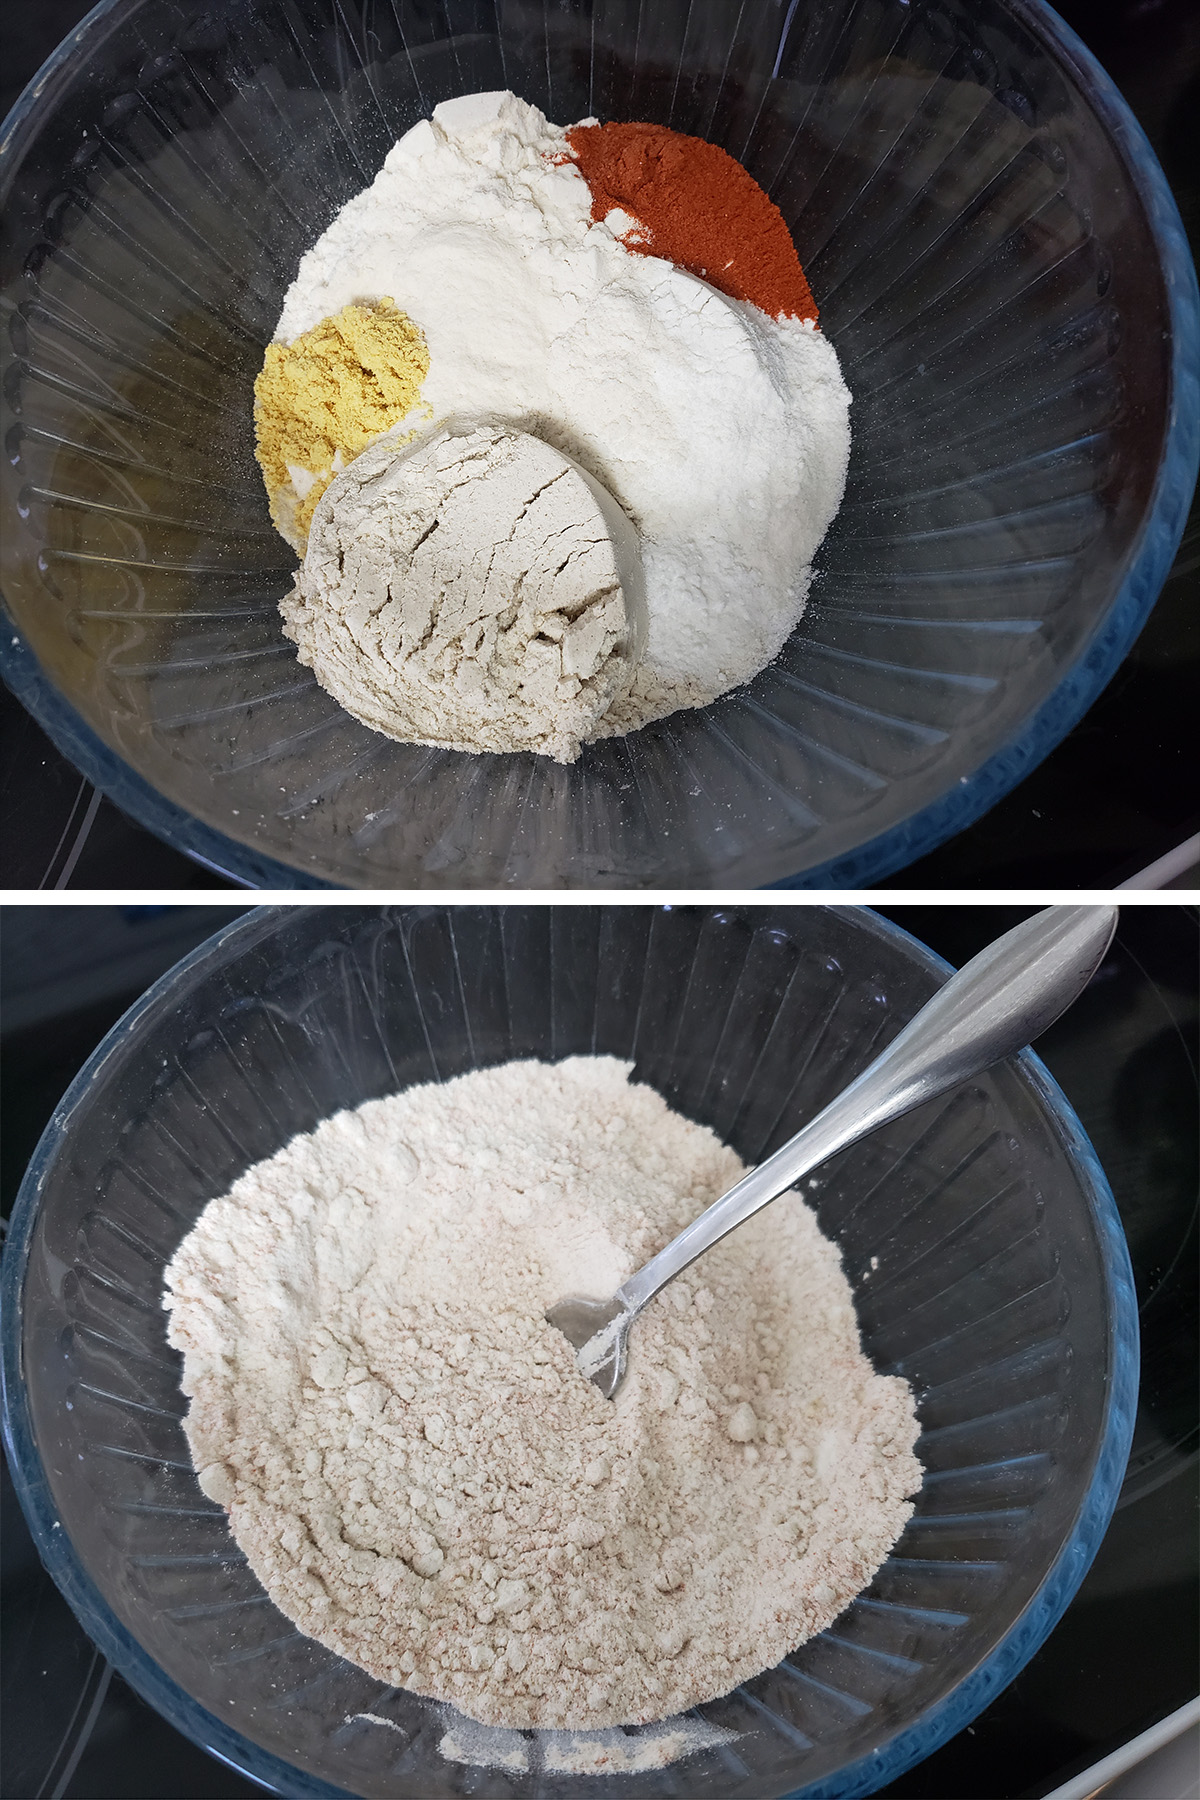 A two part compilation image showing dry ingredients measured into a bowl, and mixed.